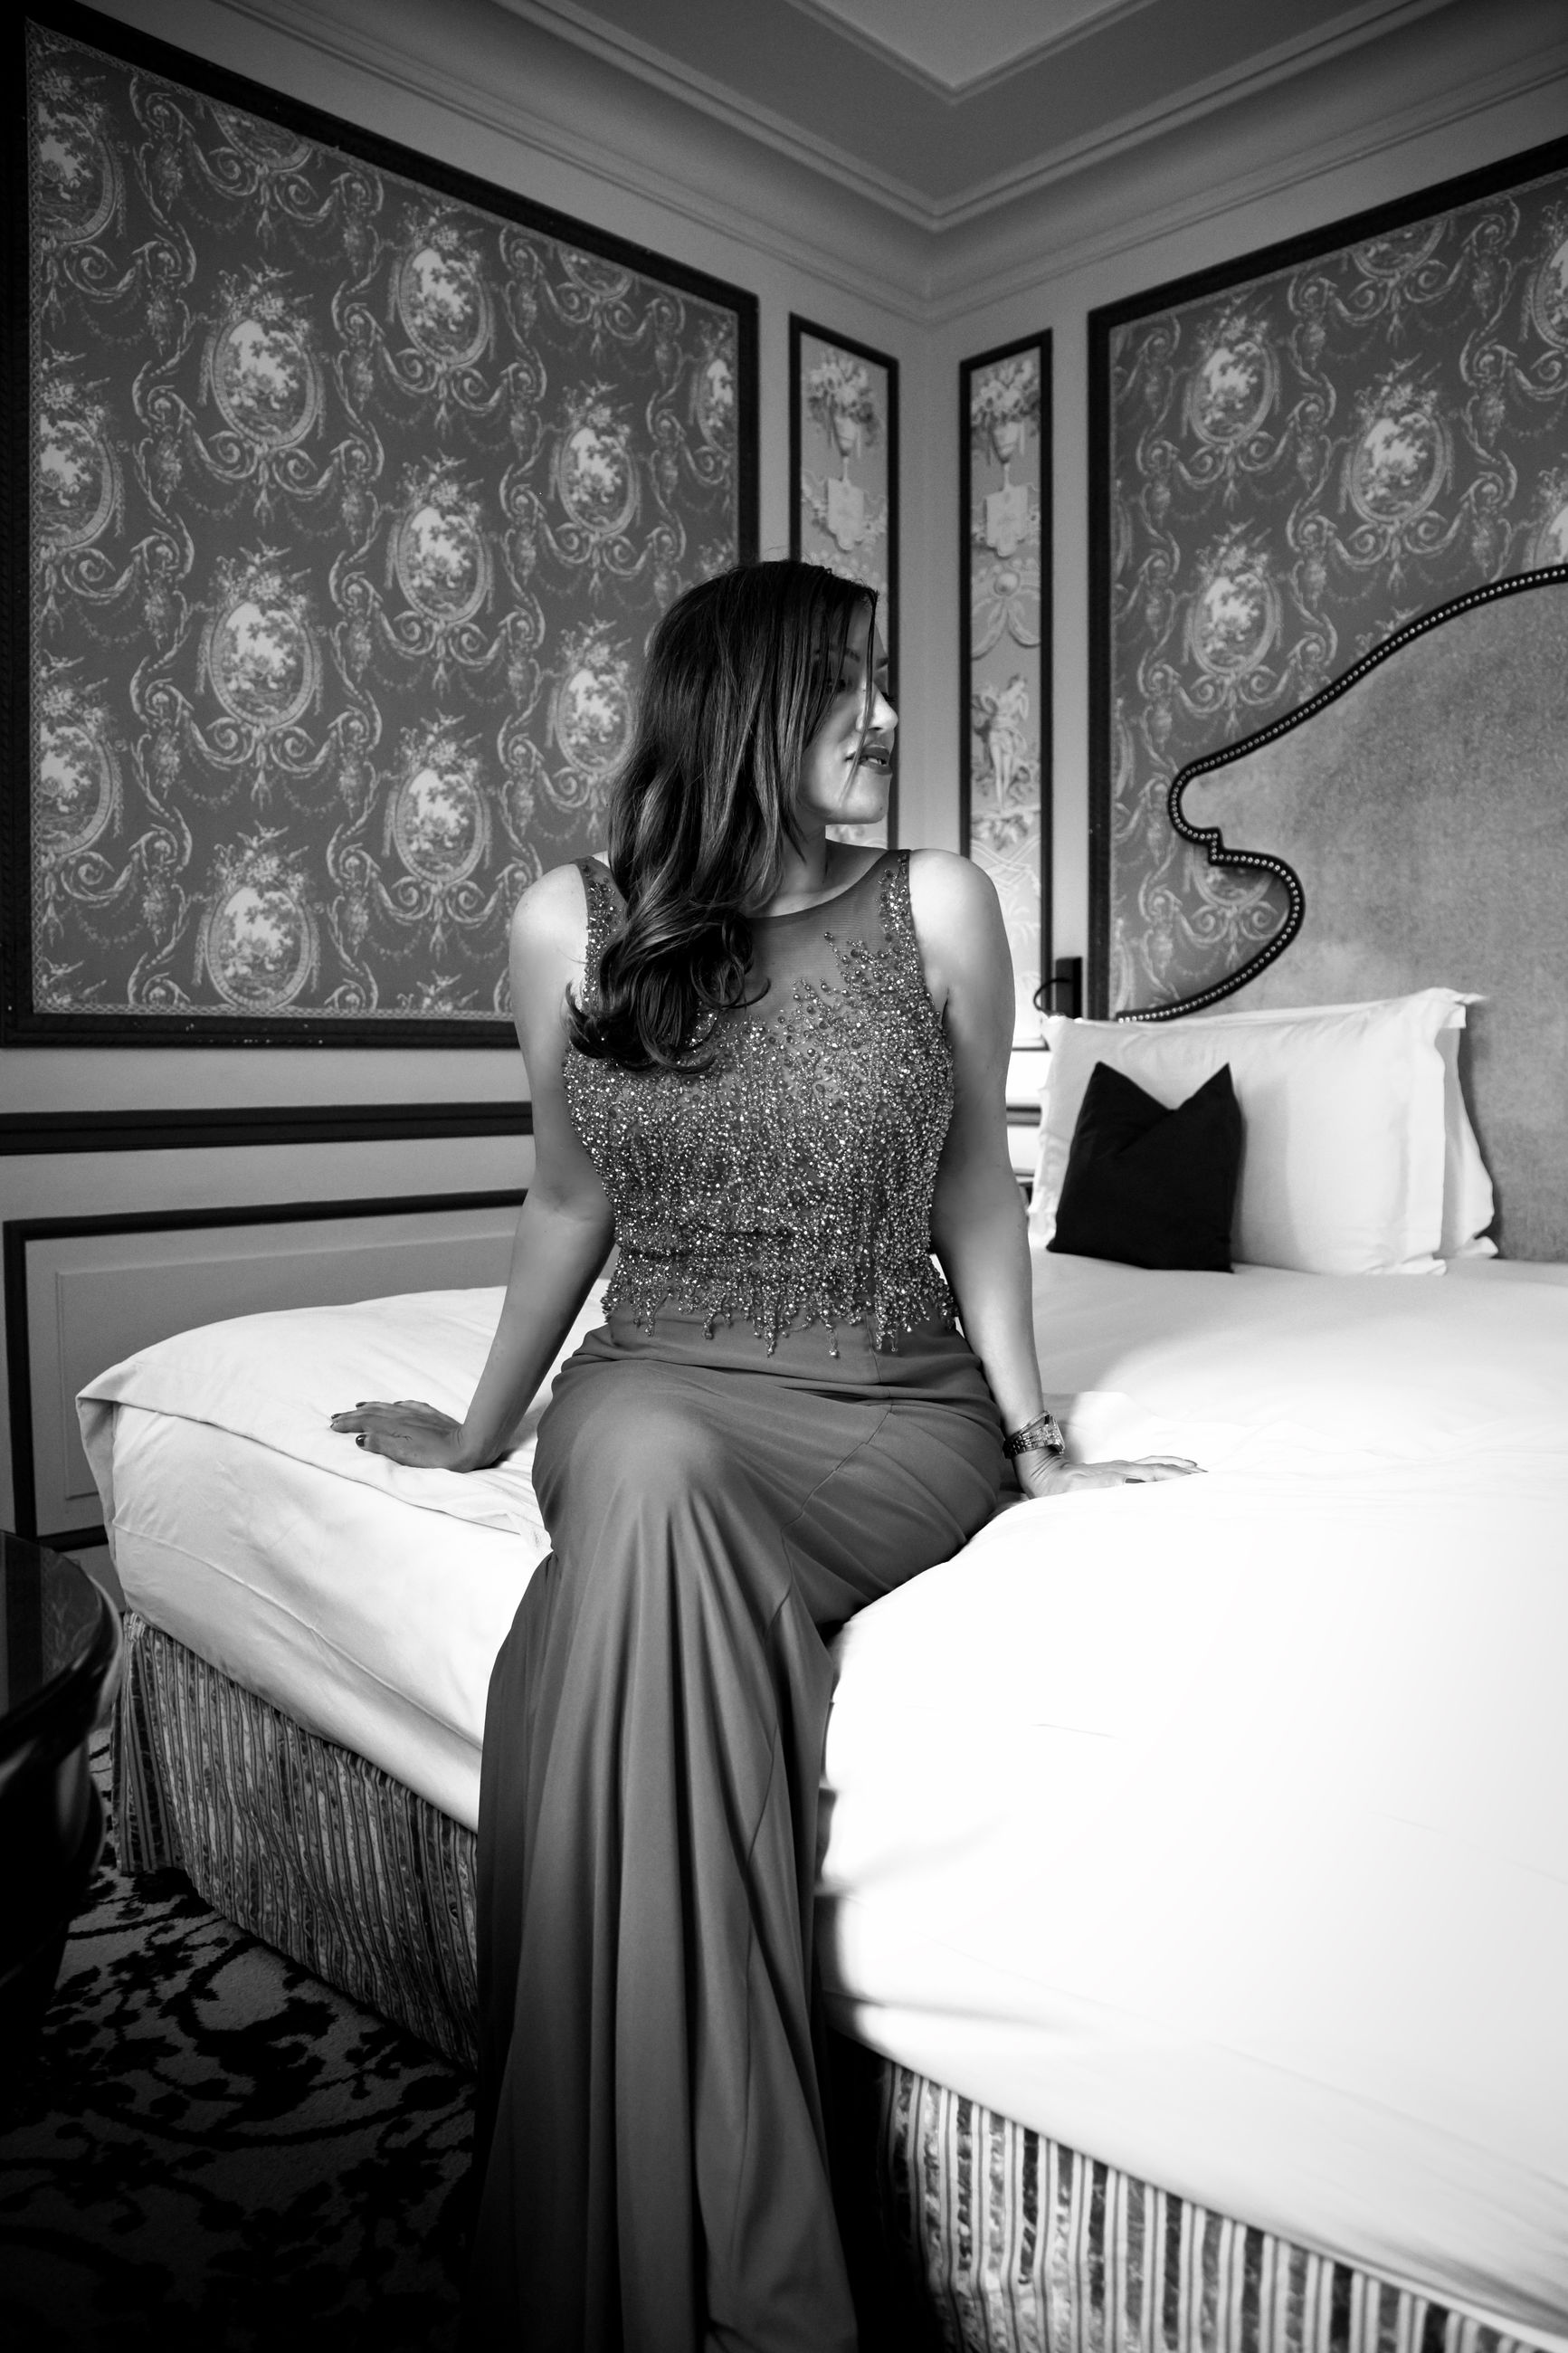 women, adult, black and white, one person, black, indoors, furniture, bed, domestic room, bedroom, dress, monochrome photography, white, lifestyles, monochrome, rear view, luxury, sitting, wealth, female, home interior, young adult, clothing, fashion, full length, hairstyle, elegance, hotel, relaxation, long hair, person, domestic life, window, photo shoot, bride, hotel room, looking